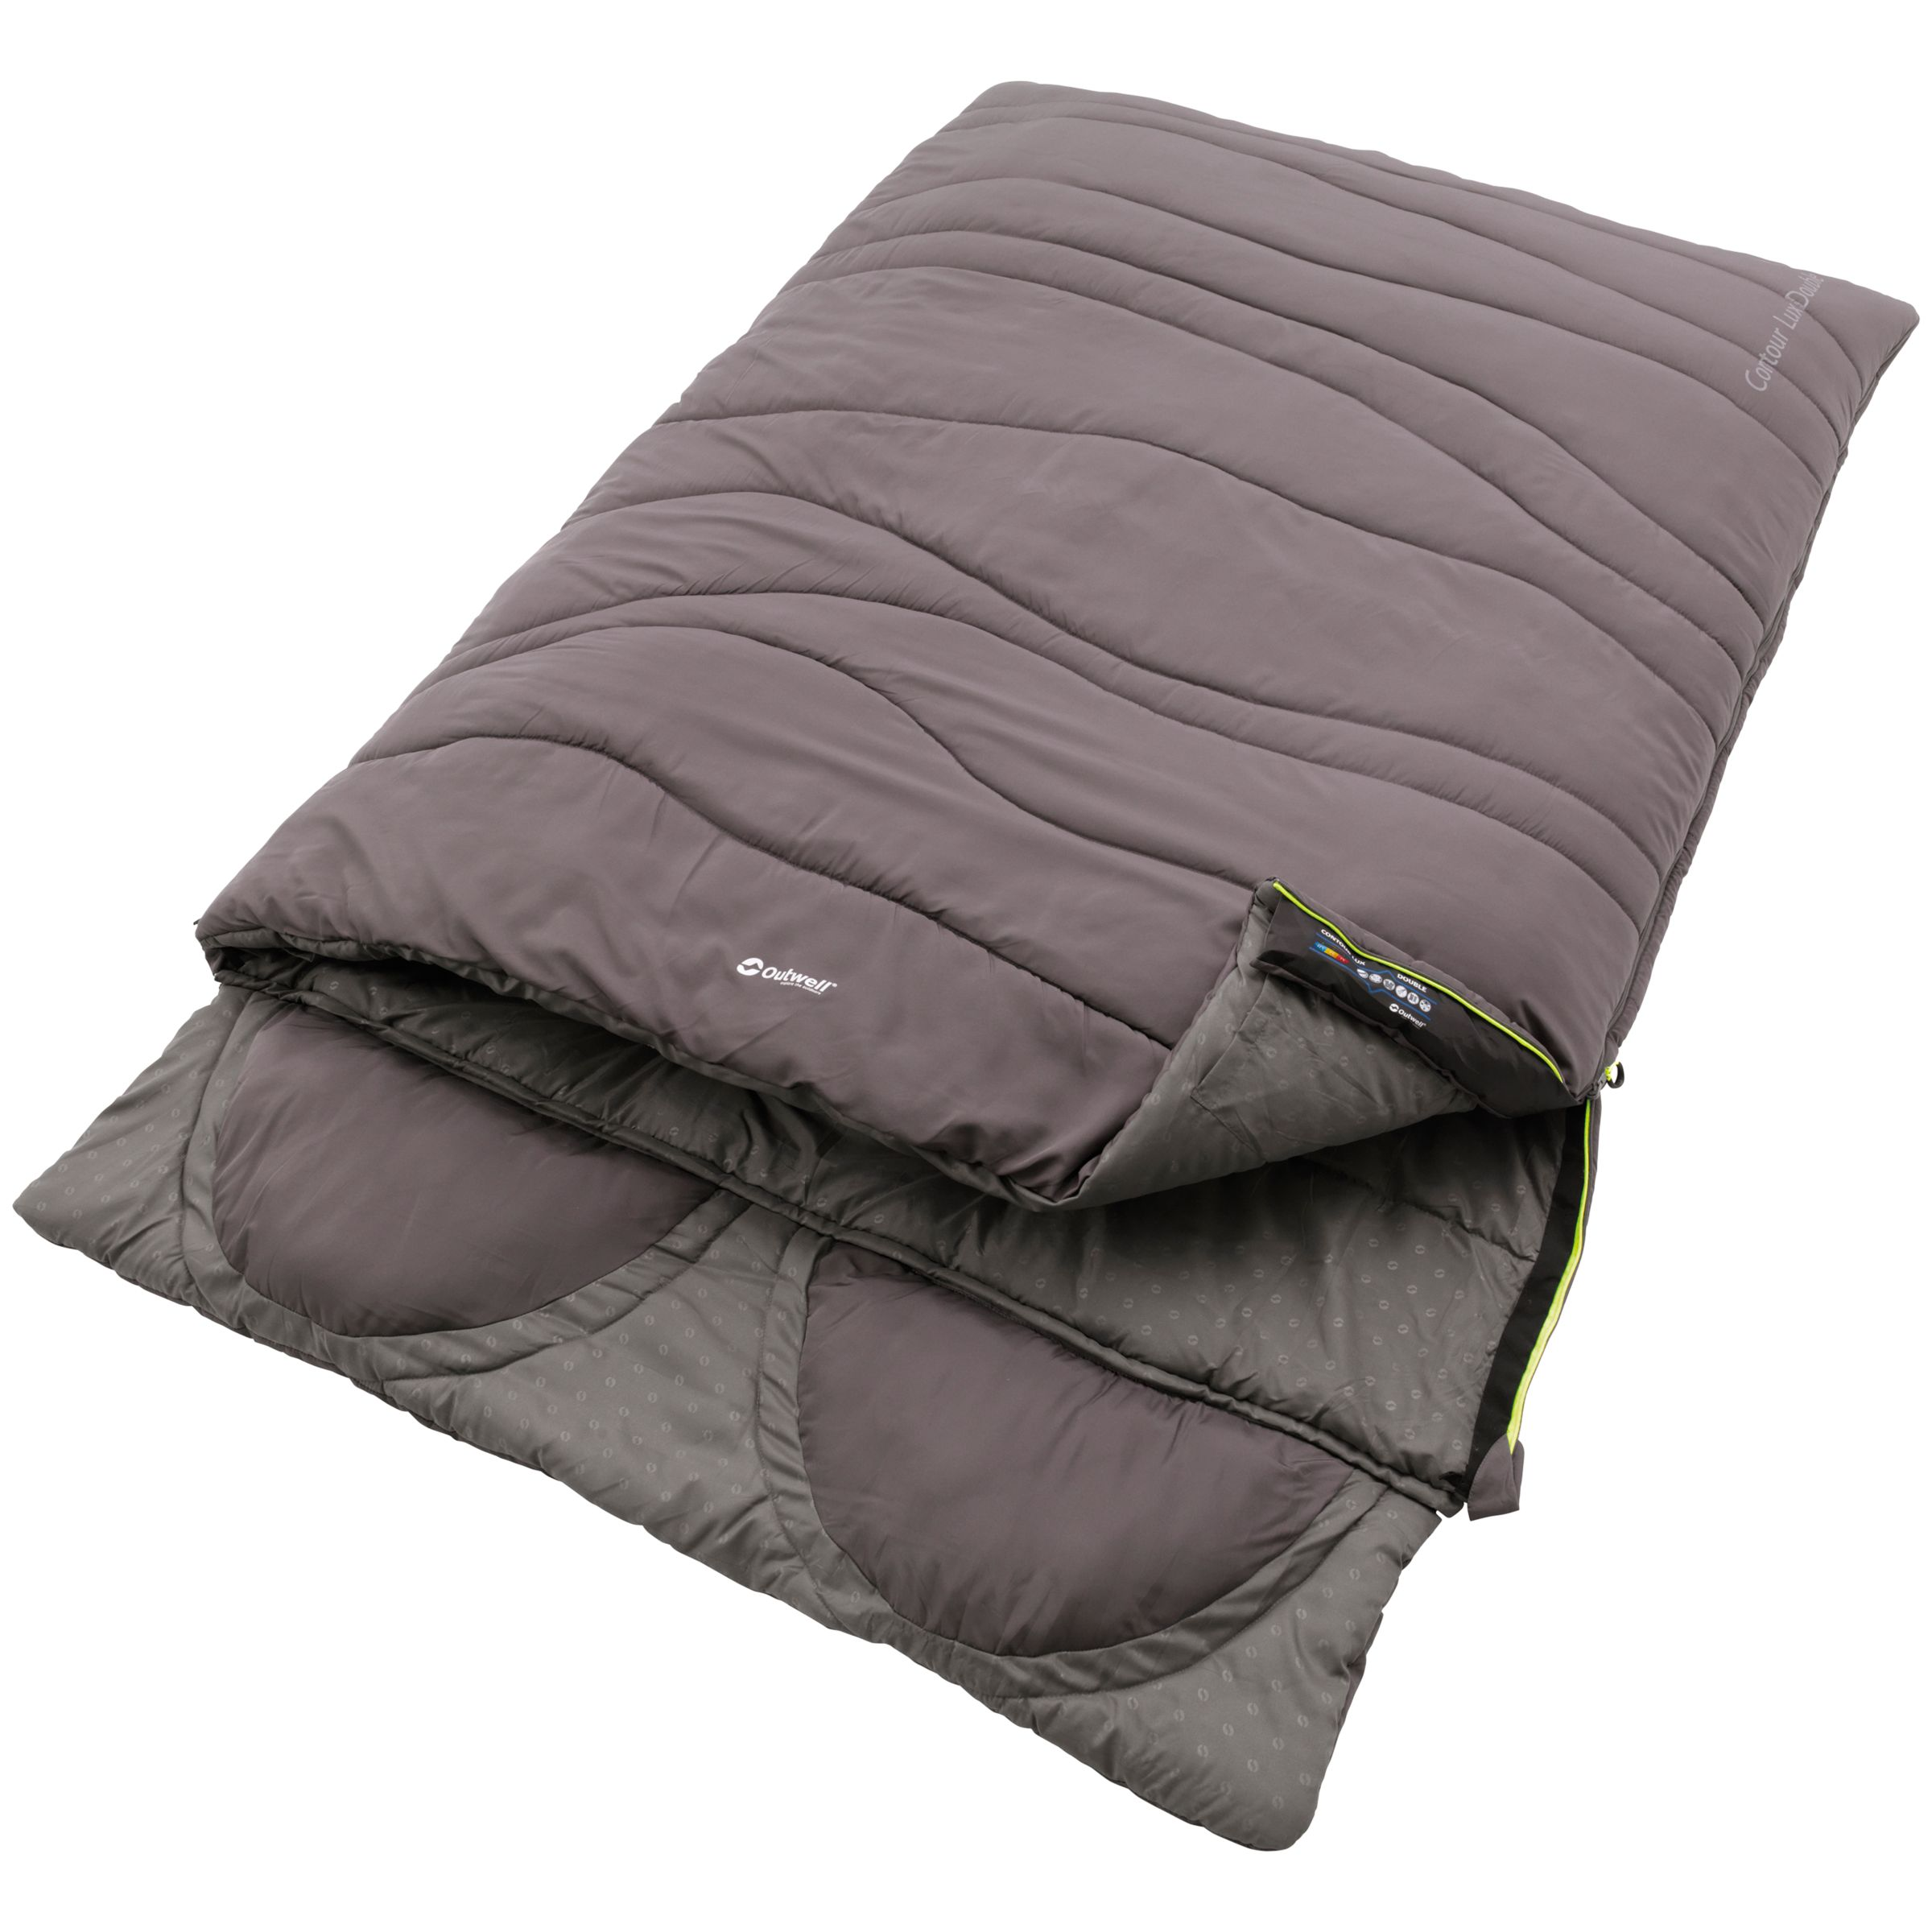 Outwell Outwell Contour Lux Double Sleeping Bag, Grey